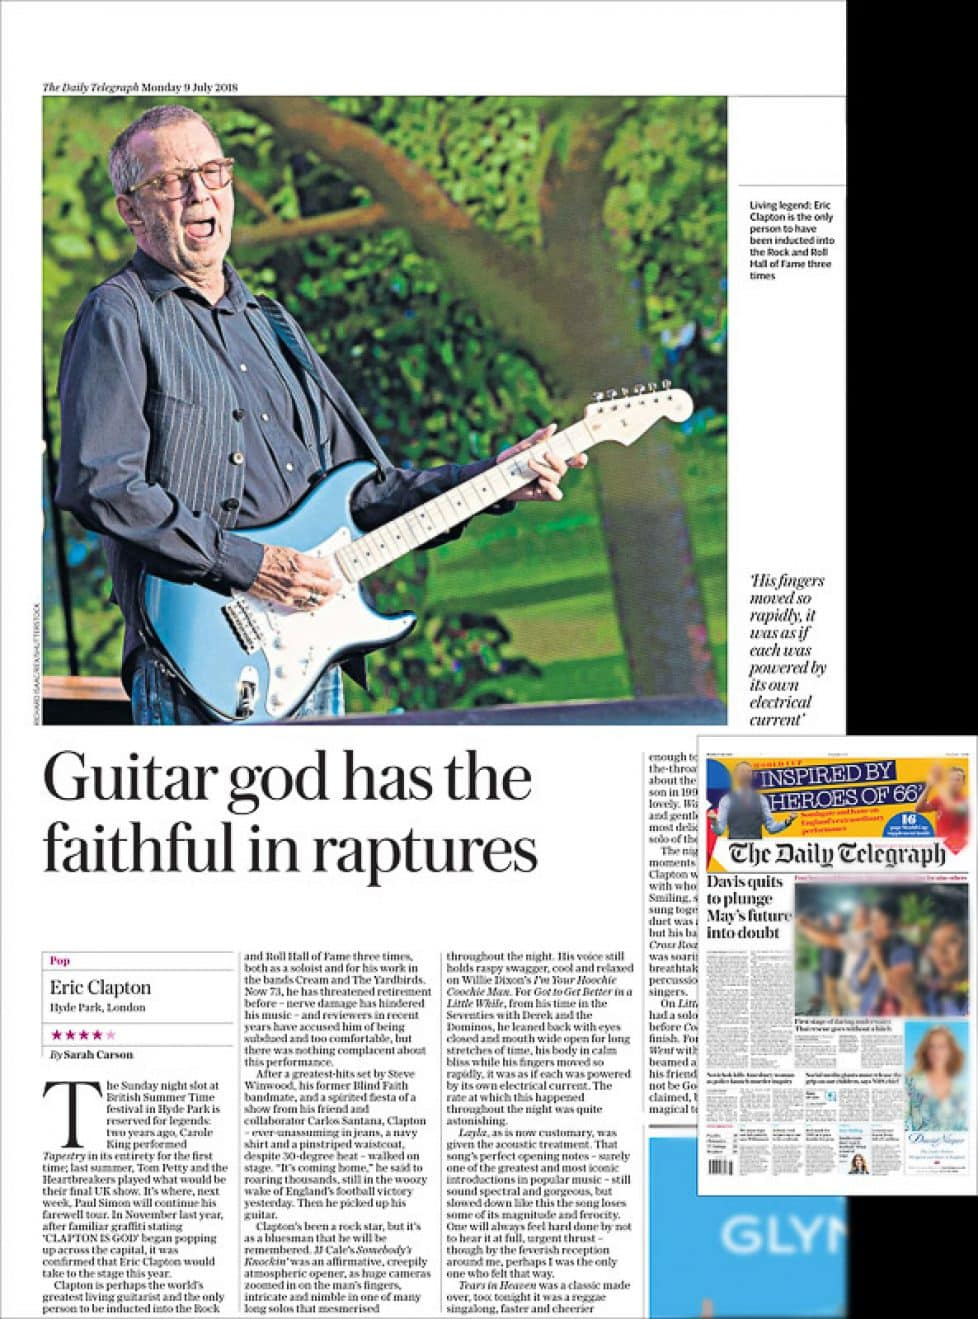 20180709_Eric_Clapton_BST_Telegraph-1-Edit.jpg